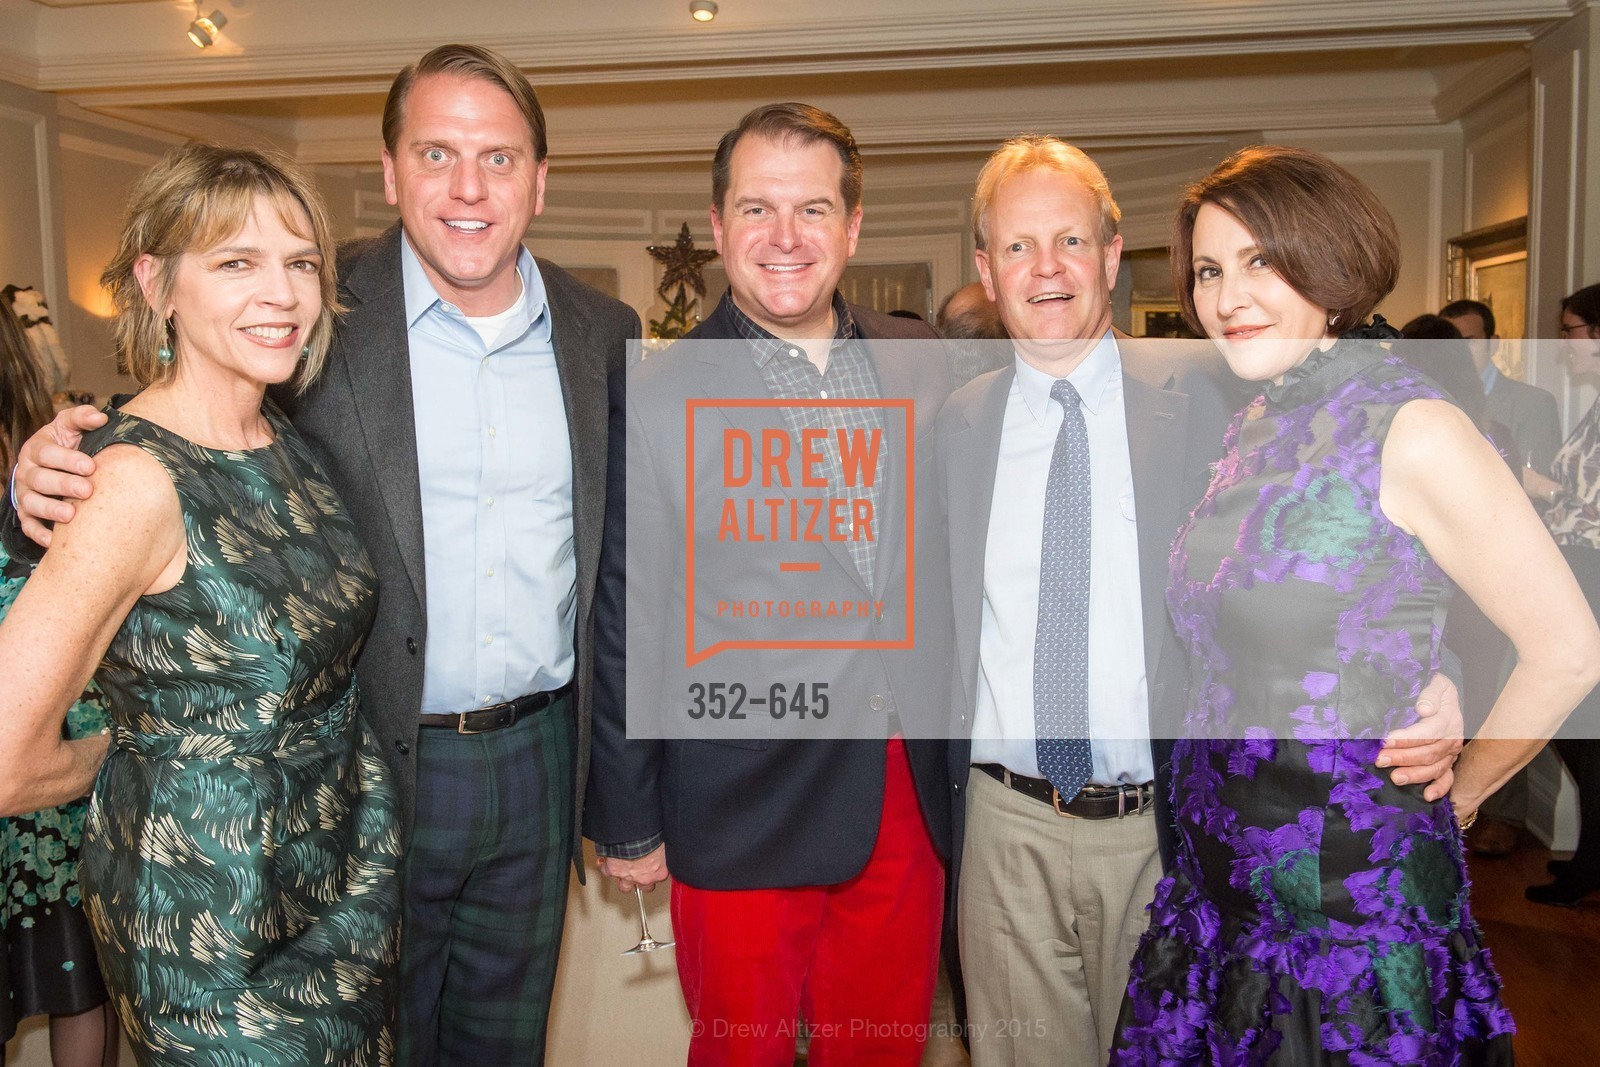 Beth Schnitzer, Scott Miller, Doug Piper, David Shuh, Susan Atherton, Atherton Holiday Party, Private Residence, December 12th, 2015,Drew Altizer, Drew Altizer Photography, full-service agency, private events, San Francisco photographer, photographer california